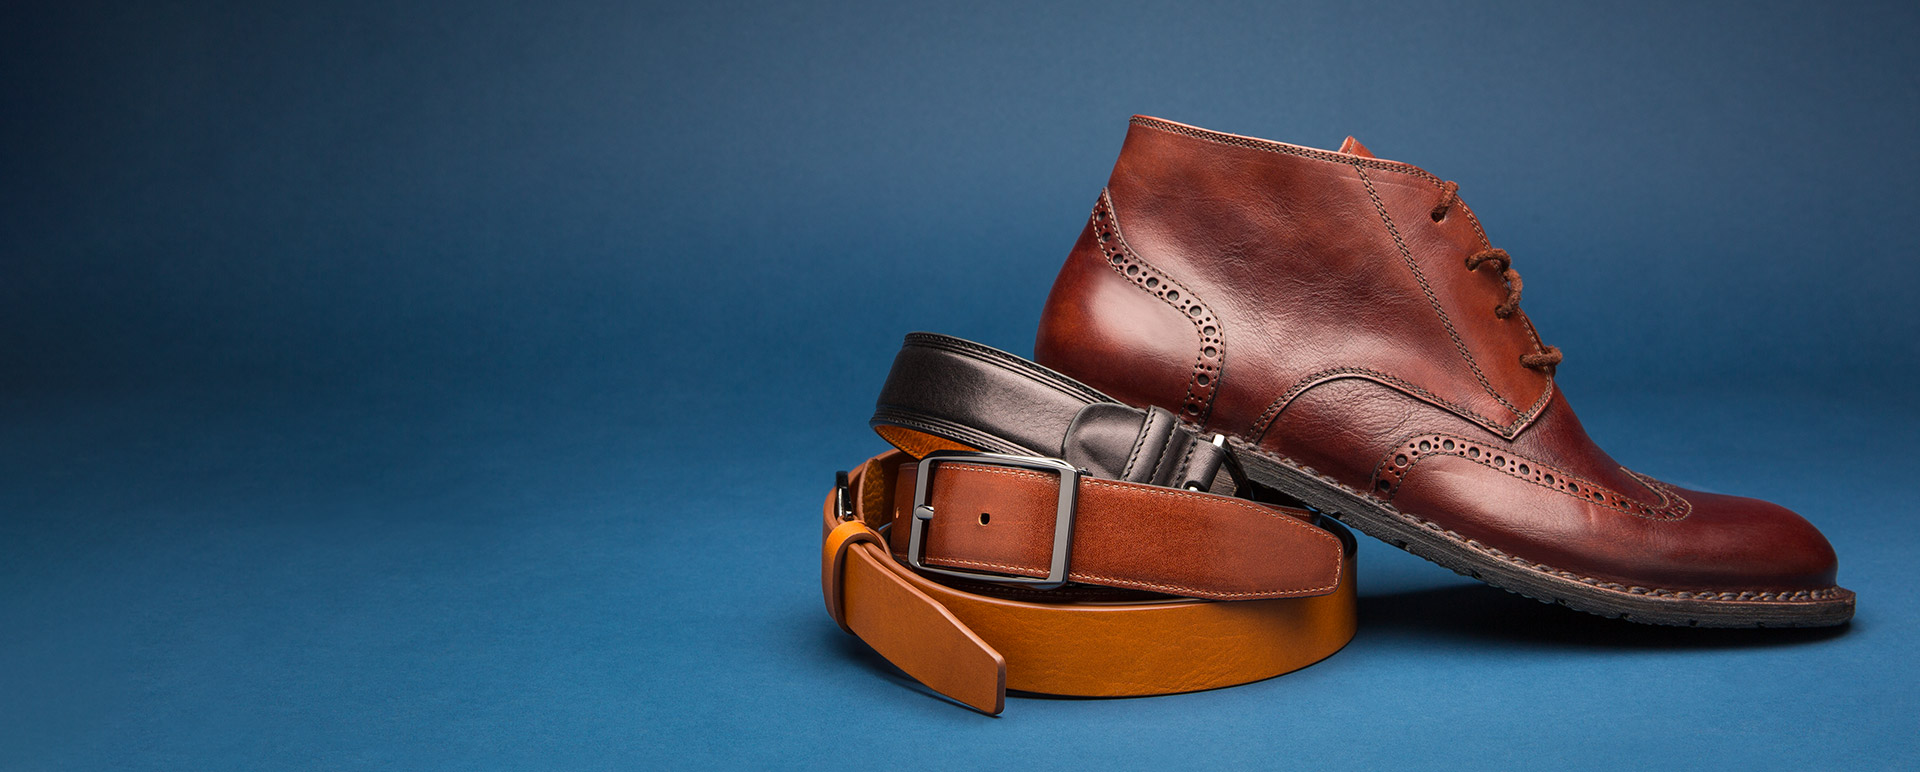 Leather Shoes & Belts